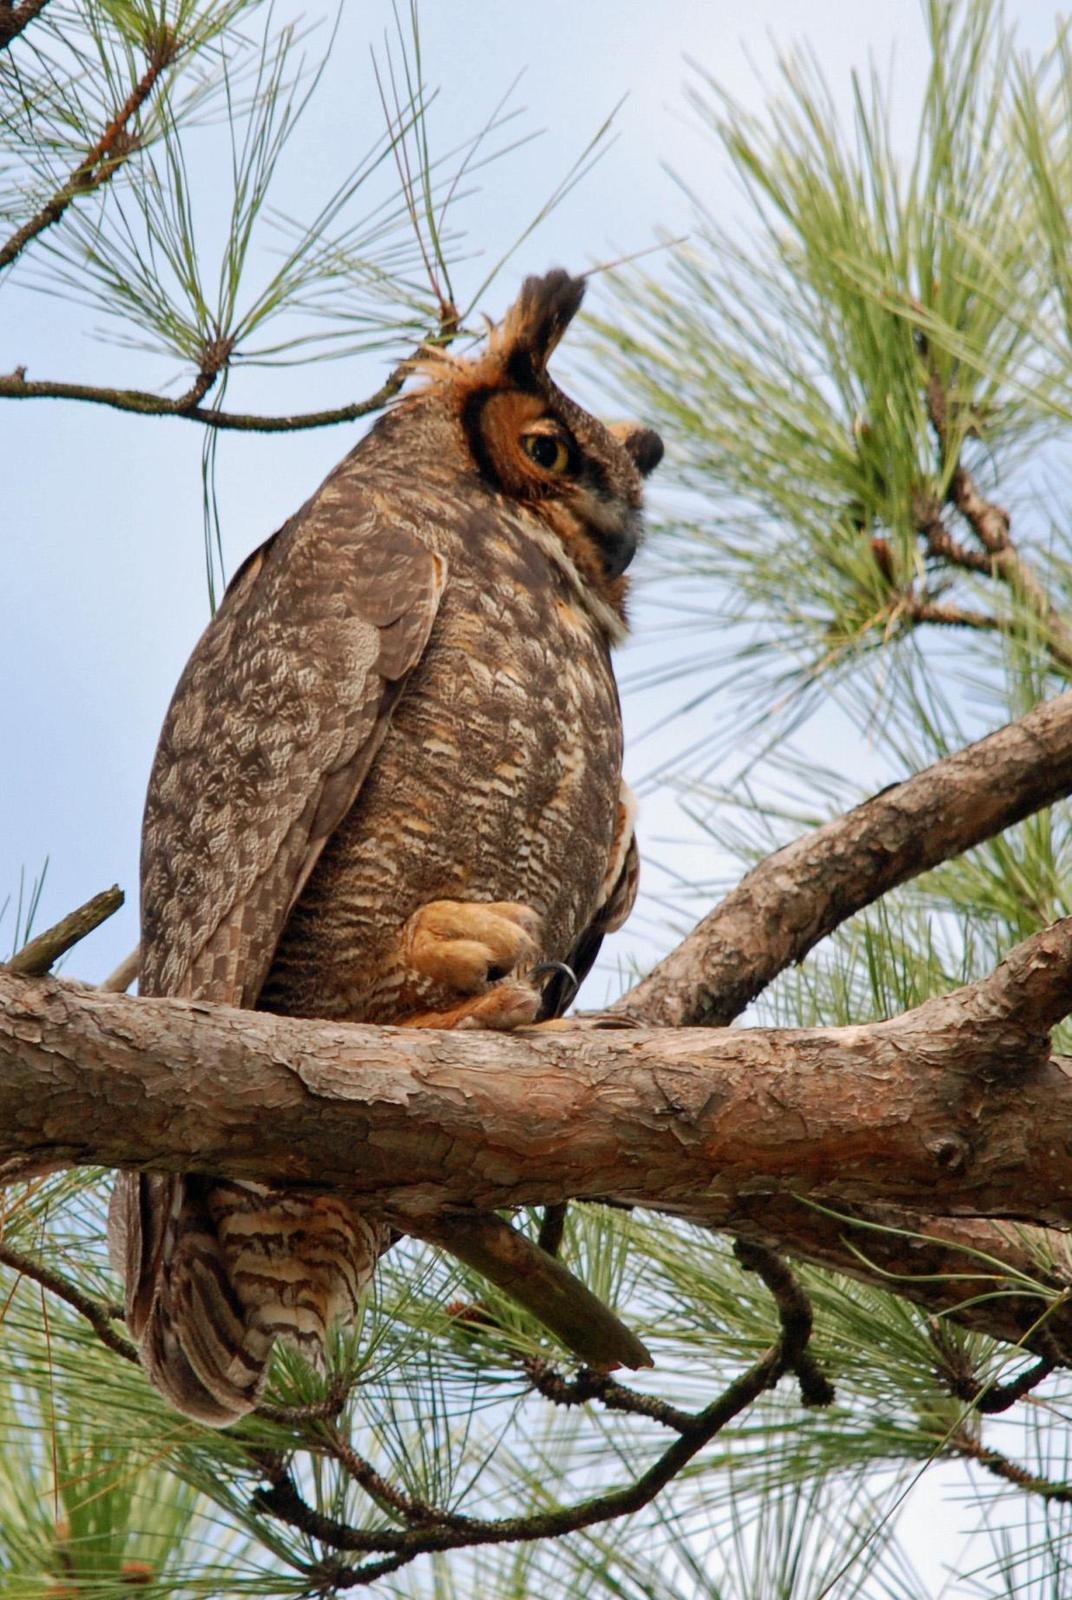 Great Horned Owl Photo by Carol Foil